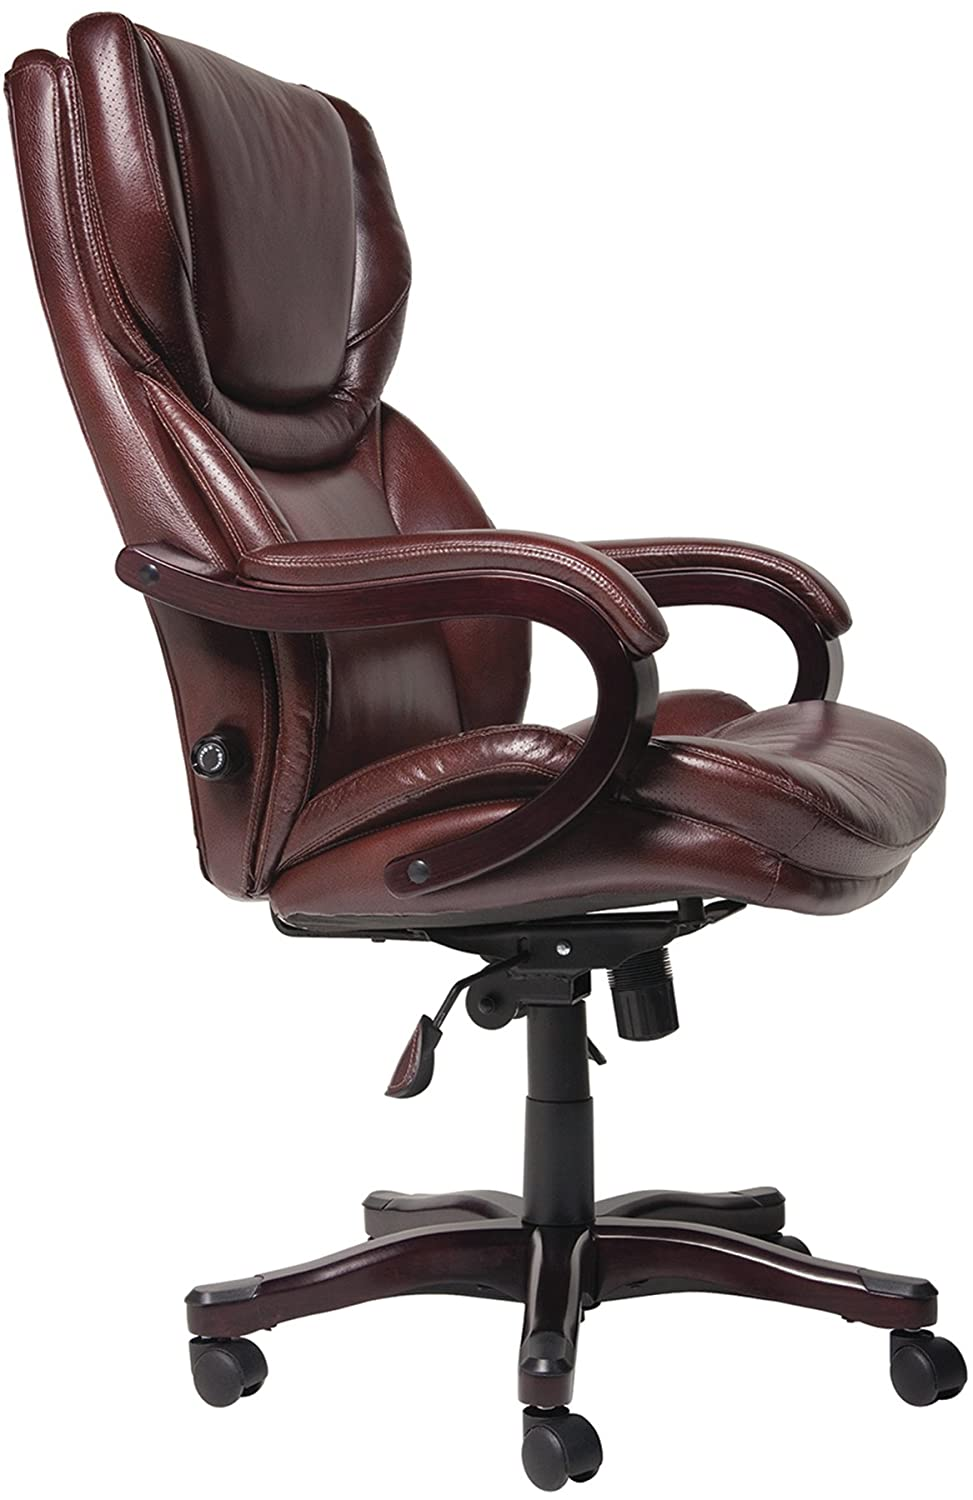 design big chairs leather chair of executive and office broyhill inspiration stunning bonded tall walmart